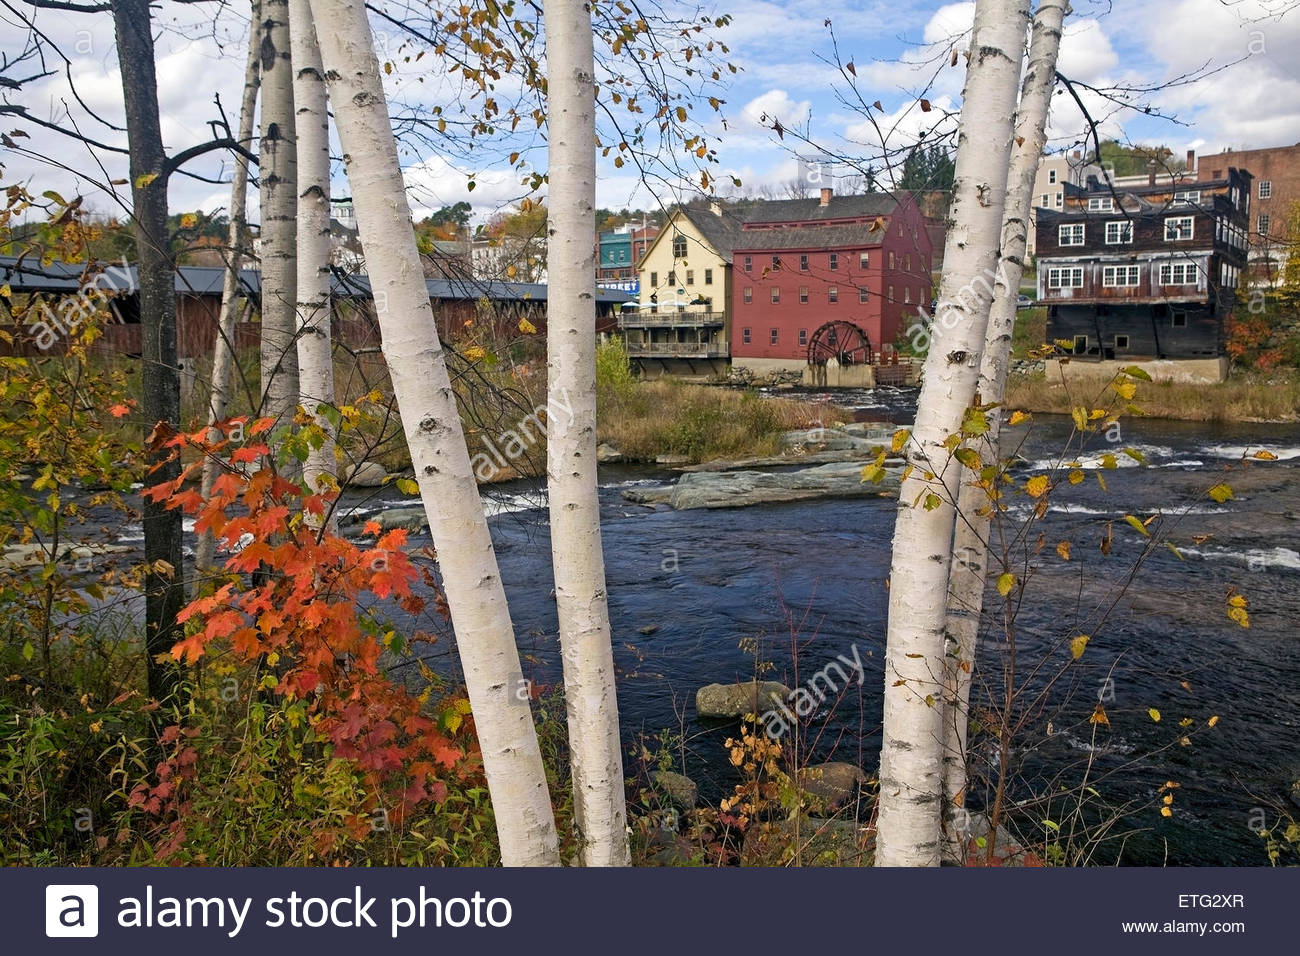 Ammonoosuc River clipart #10, Download drawings